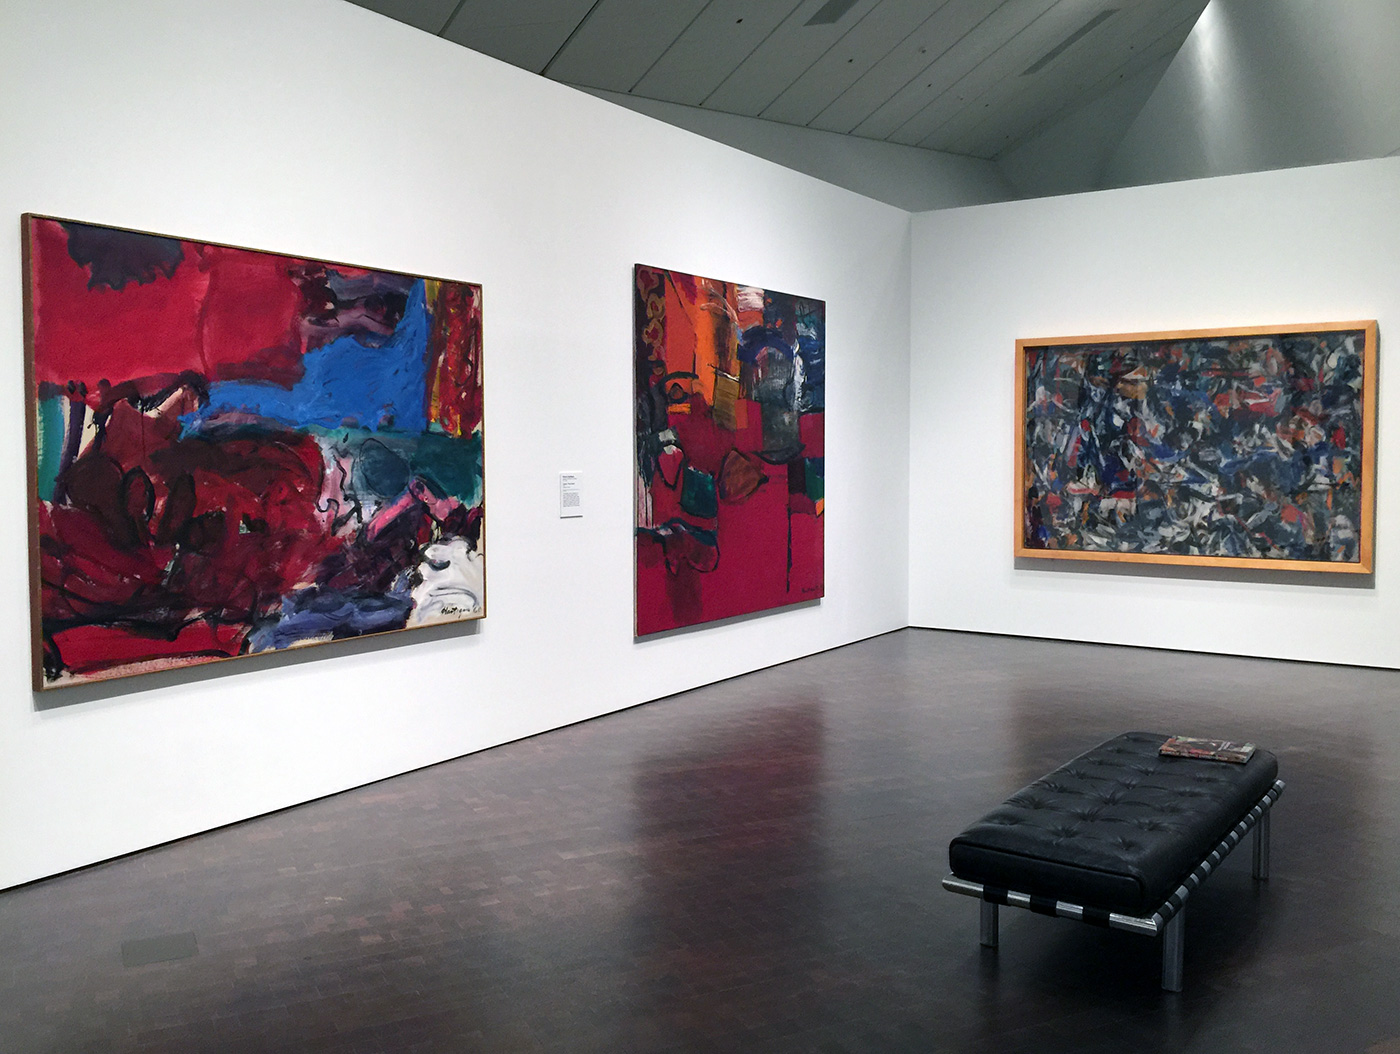 """Works by Grace Hartigan, including """"The King Is Dead"""" (1951) (far right)"""